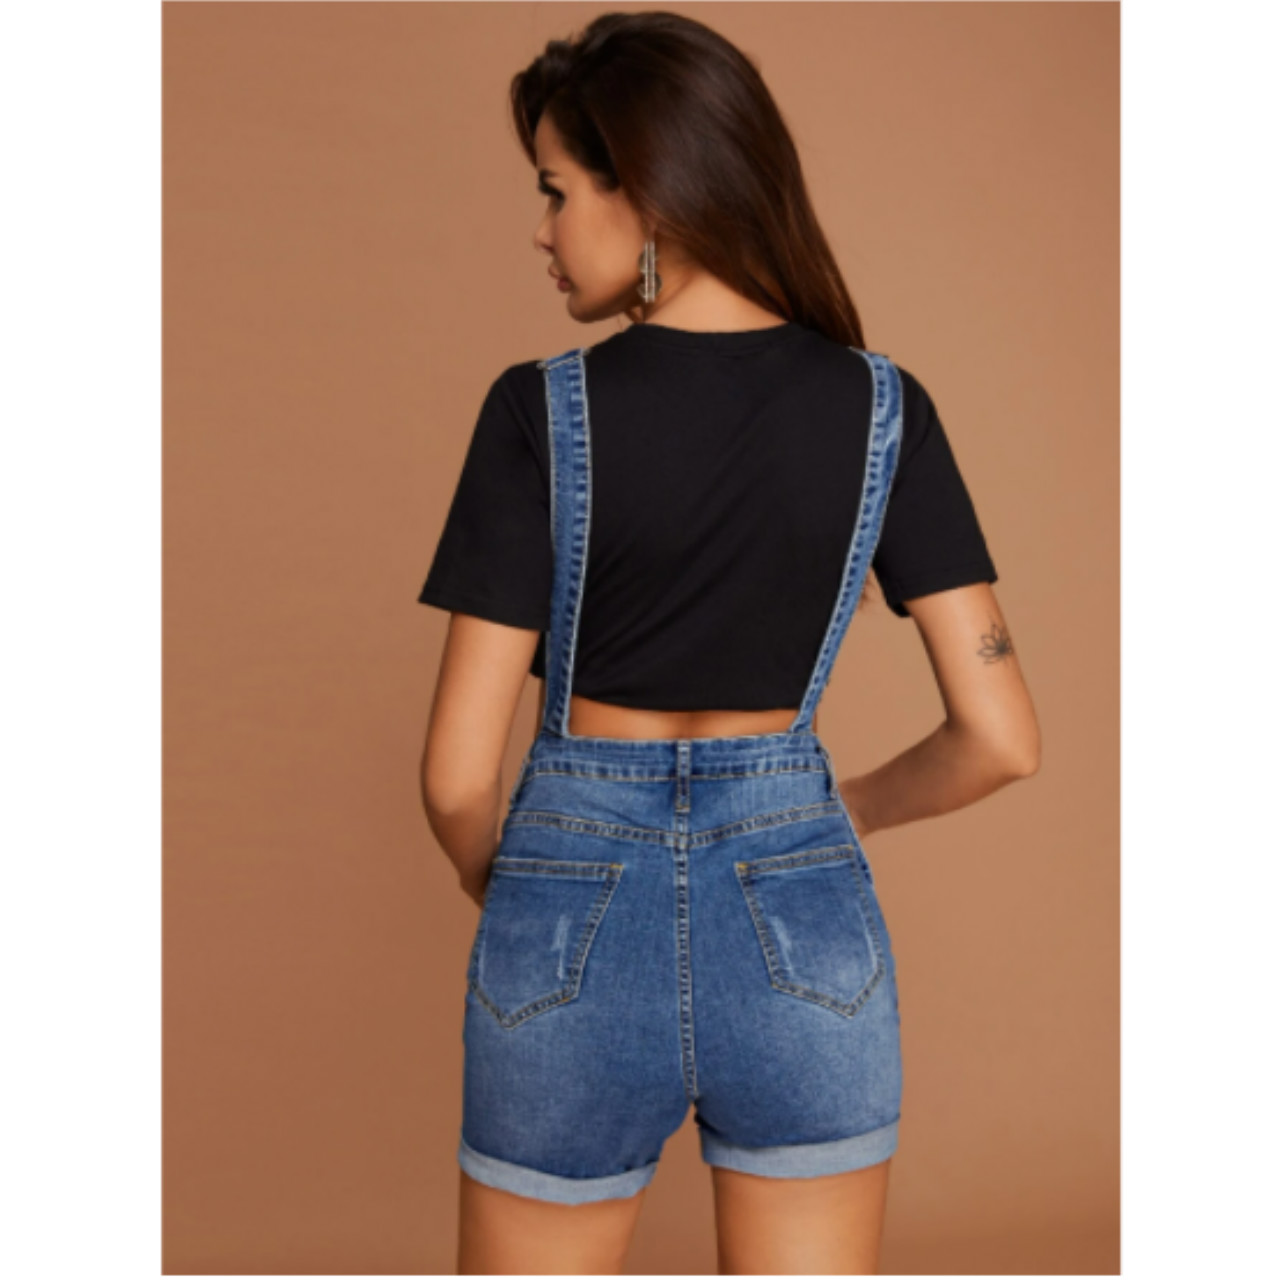 Pocket front ripped detail cuffed denim overall shorts s